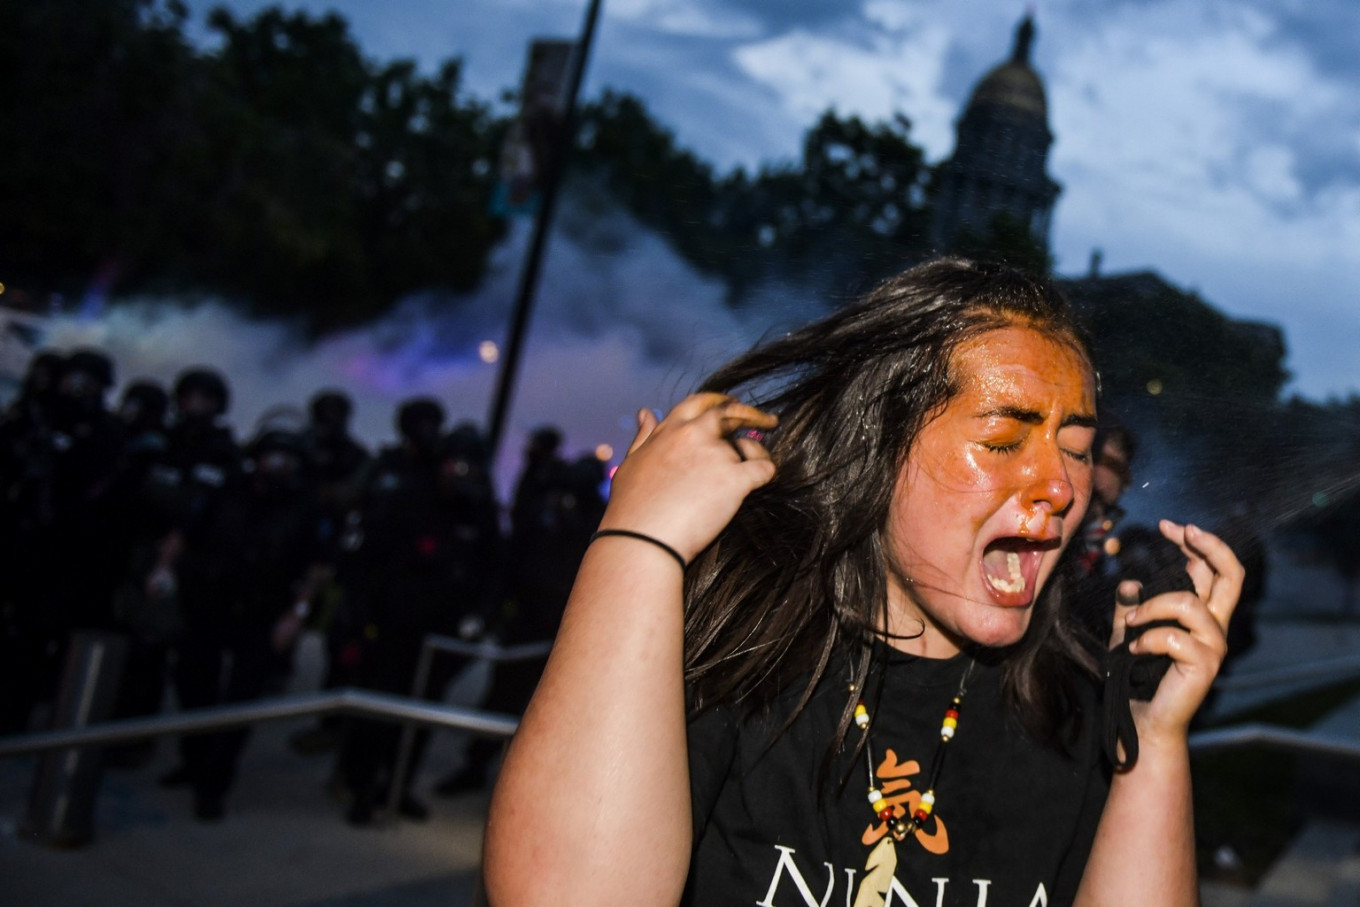 A woman reacts after being sprayed by pepper spray next to the Colorado State Capitol as protests against the death of George Floyd continue for a third night on May 30, 2020 in Denver, Colorado. The city of Denver enacted a curfew for Saturday and Sunday nights and Governor Jared Polis activated the Colorado National Guard in hopes of stopping protests that have wreaked havoc across the city.   AFP/ Getty Images/ Michael Ciaglo